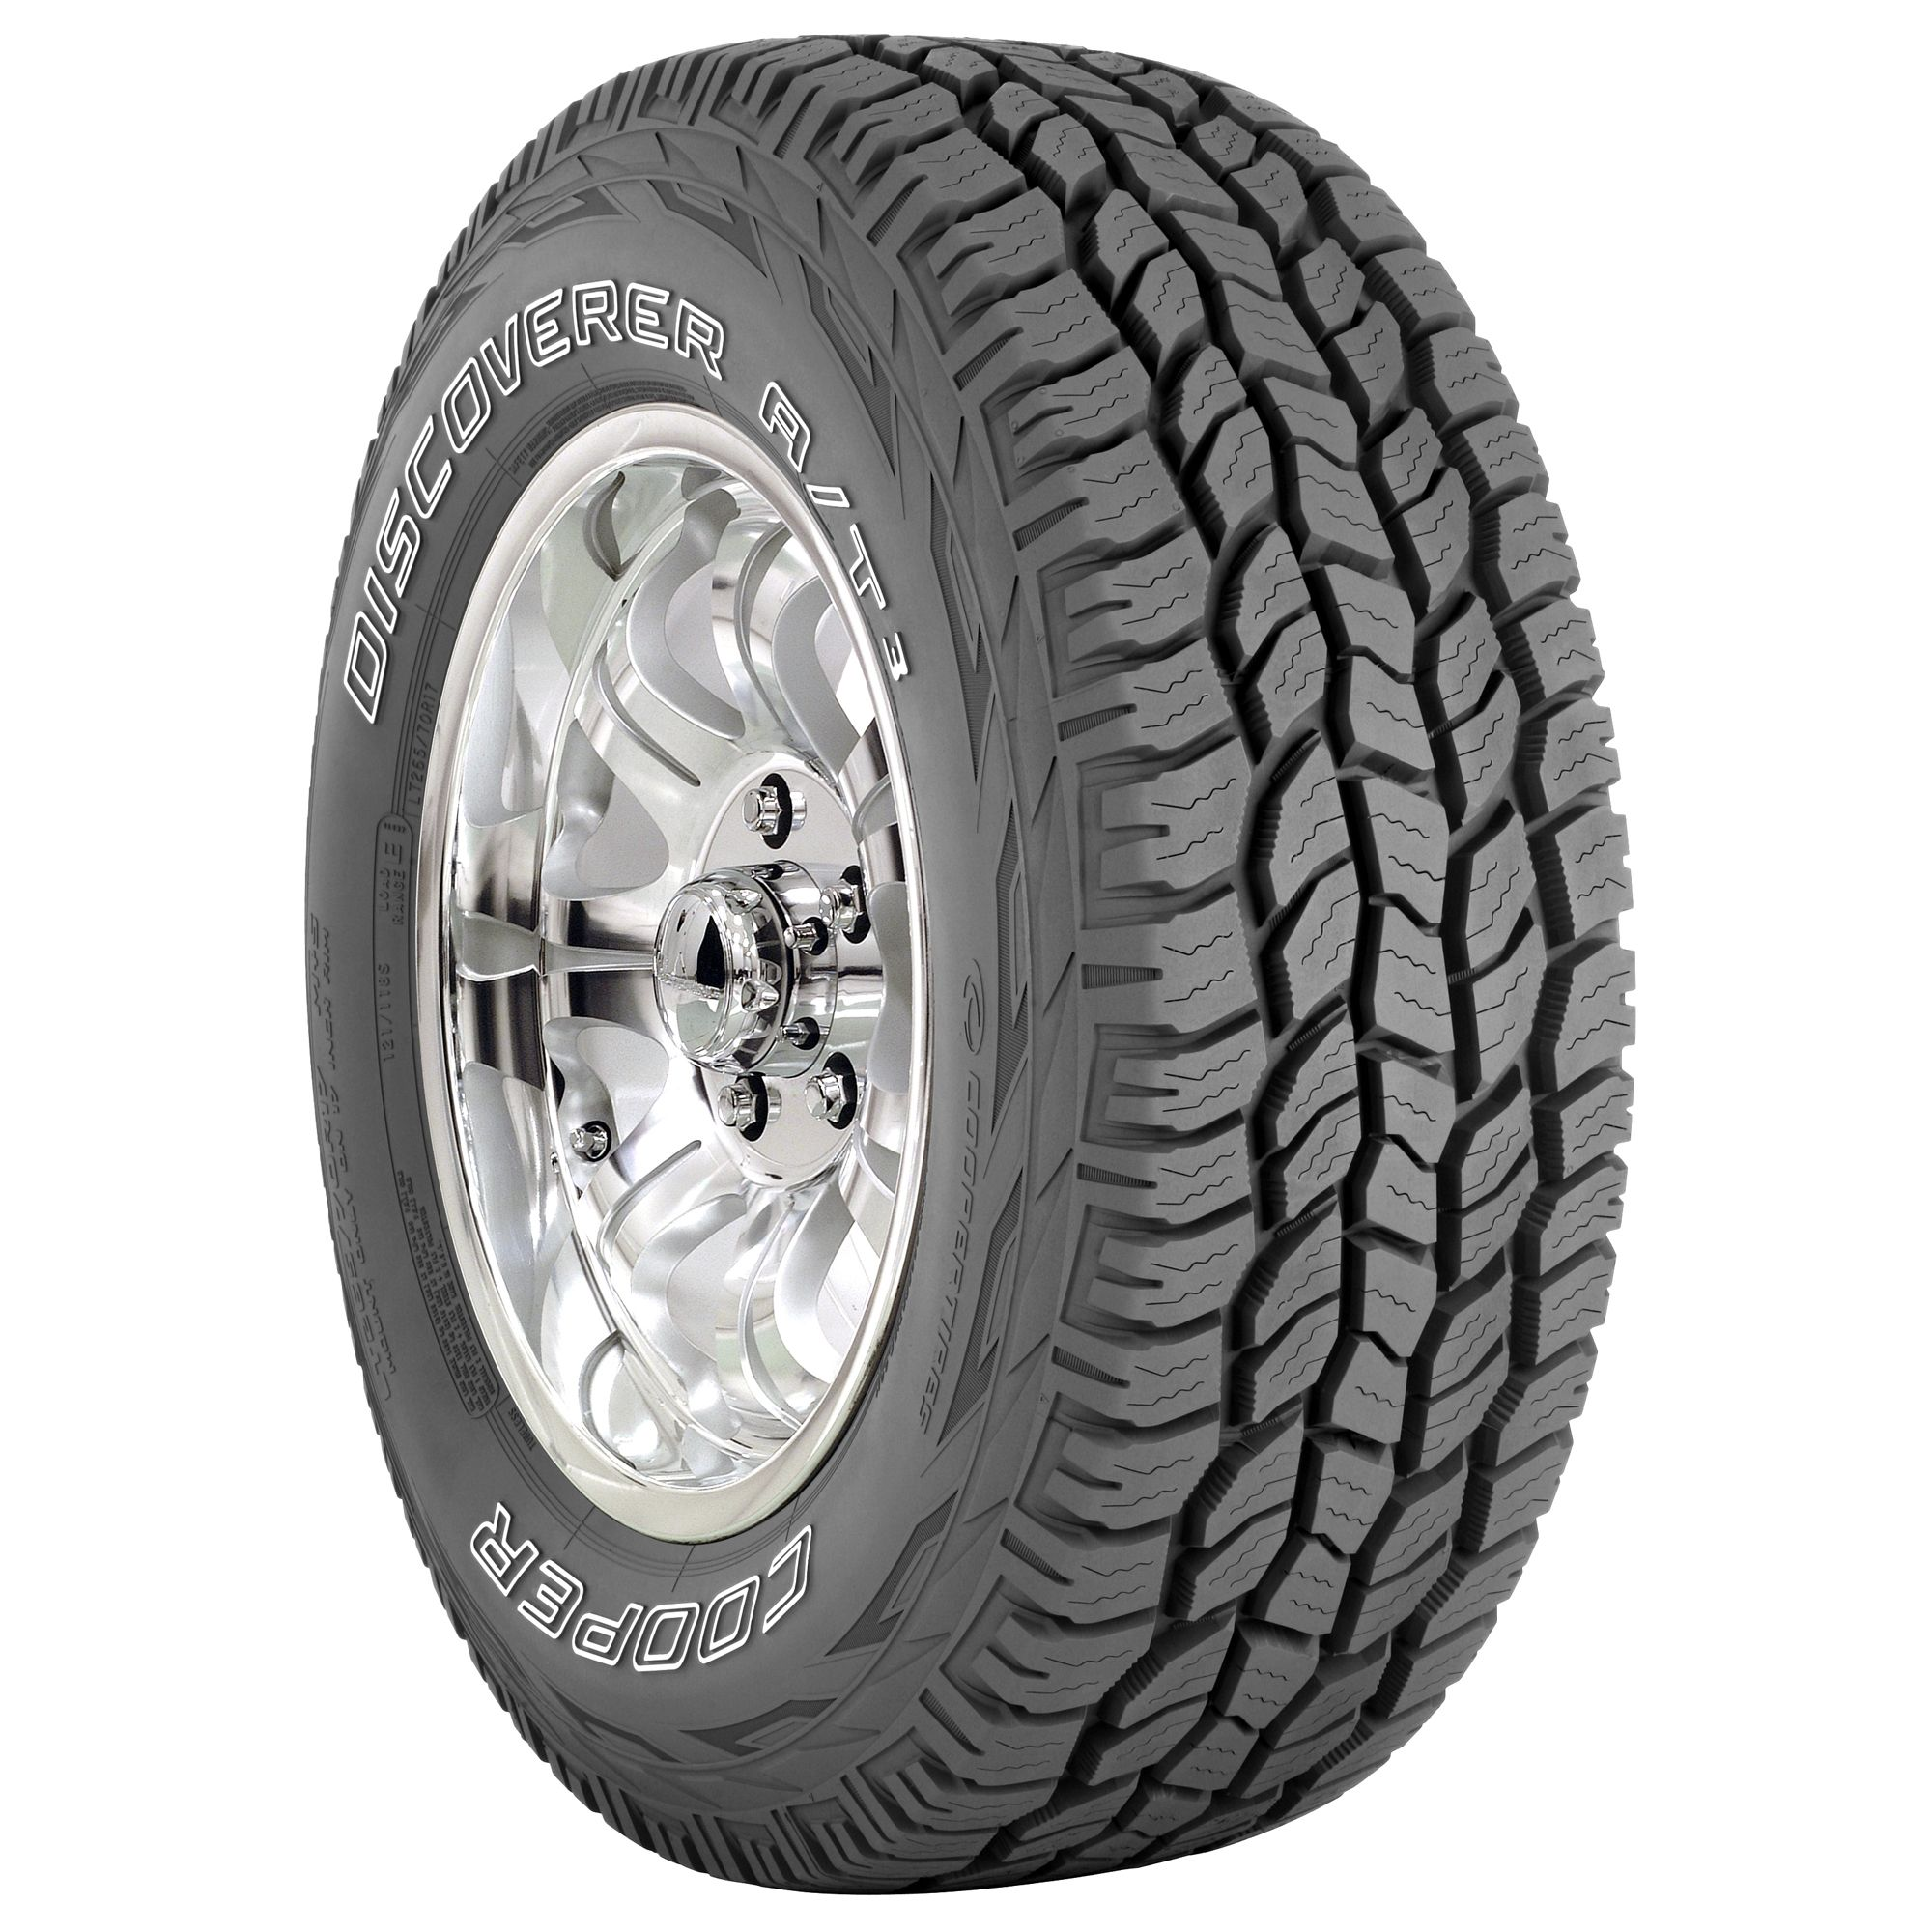 Cooper Discoverer A/T3 - LT265/70R17E 121/118S OWL - All Season Tire 265-70-17